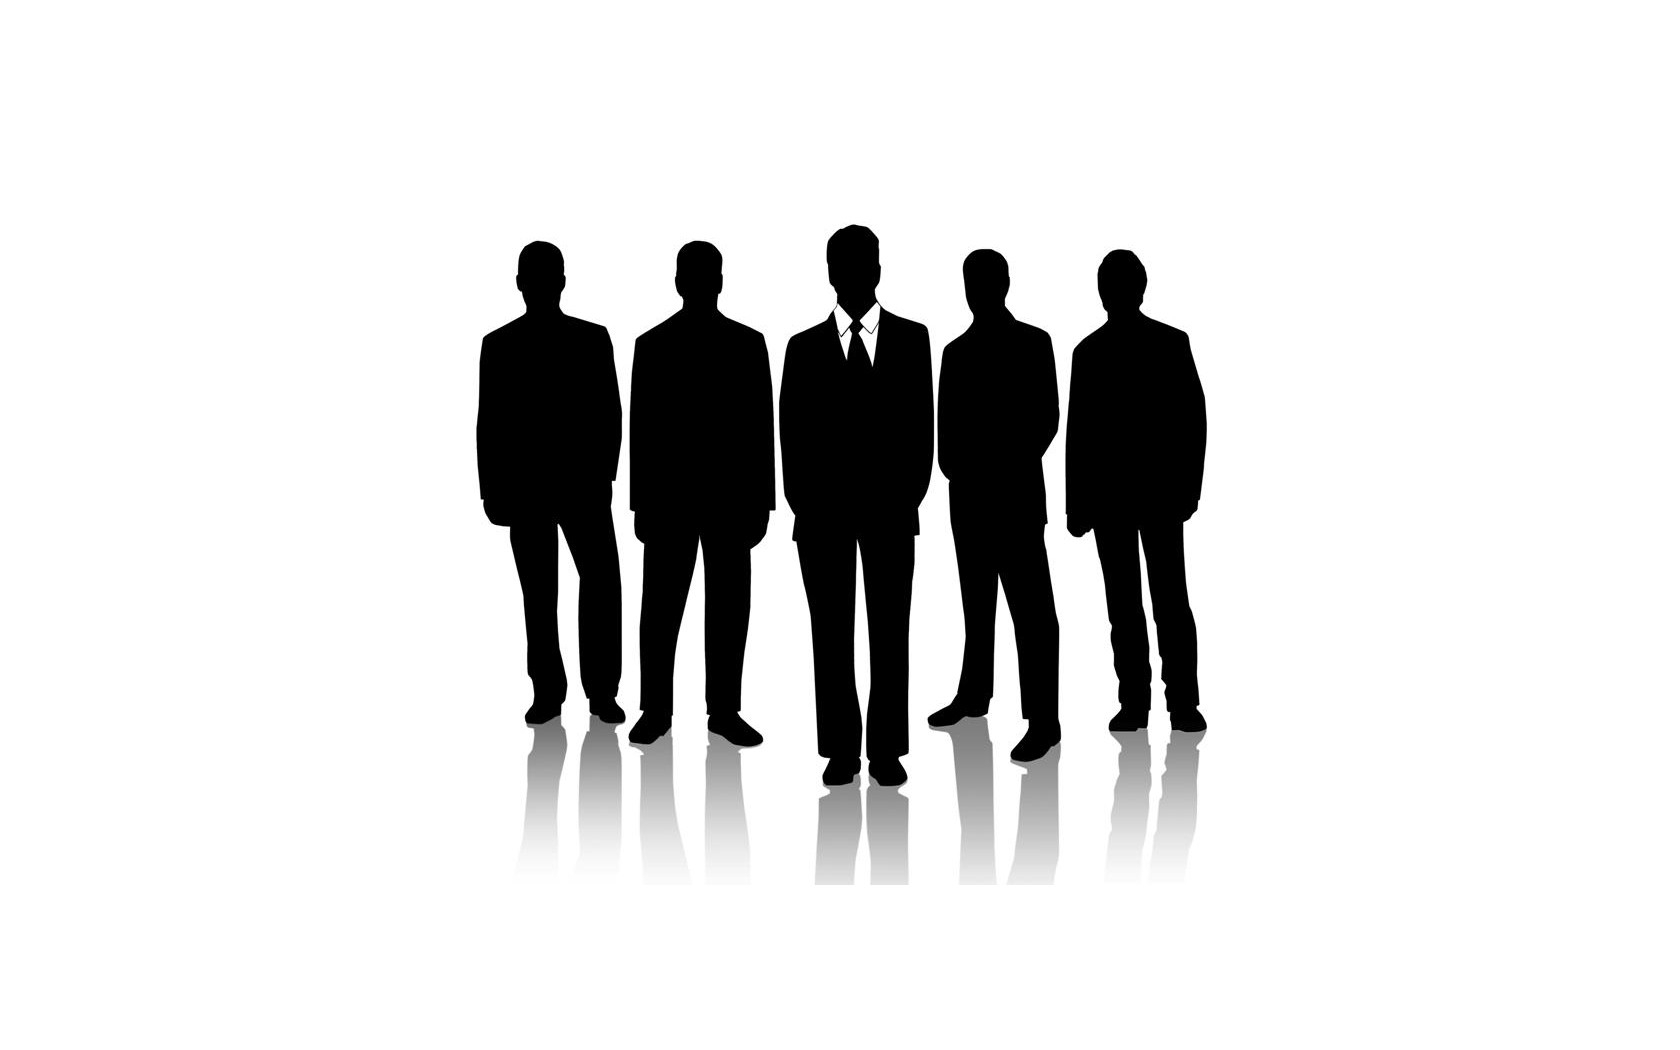 1680x1050 Anonymous Suit Silhouette Business 1680x1050 Wallpaper High